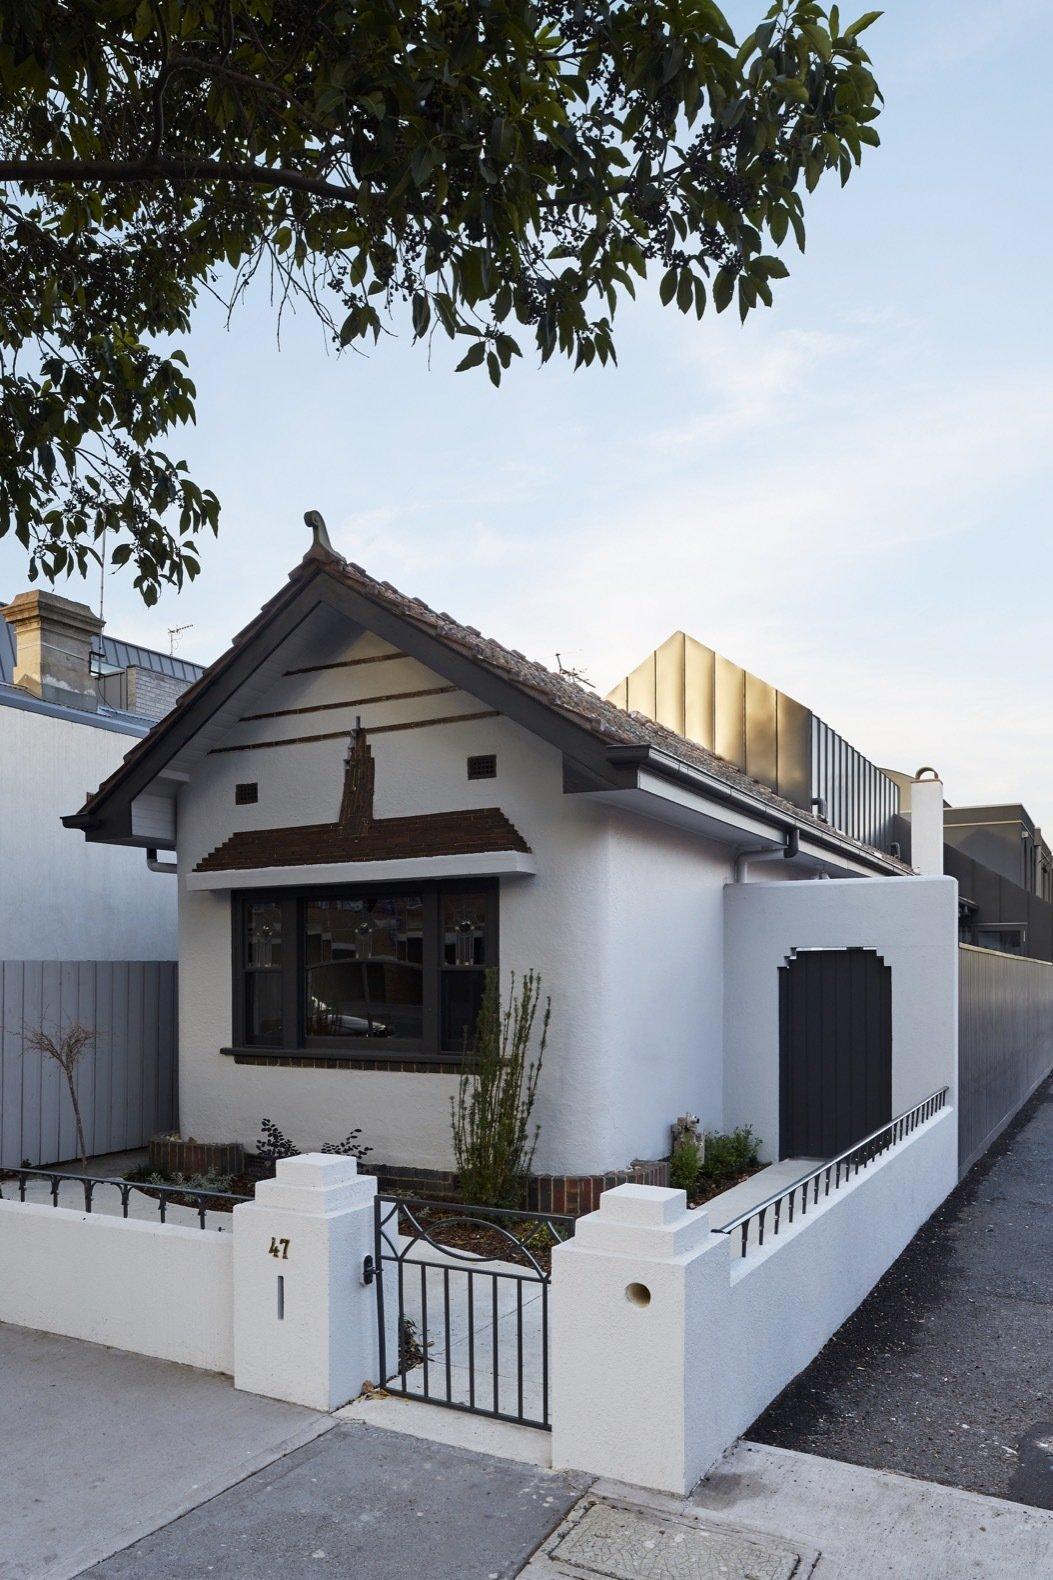 Exterior, Shingles Roof Material, Gable RoofLine, and House Building Type Built in 1938, the Shadow House retains its original curved entry porch.  Photo 1 of 16 in An Art Deco Dwelling Receives a Sleek, Contemporary Extension